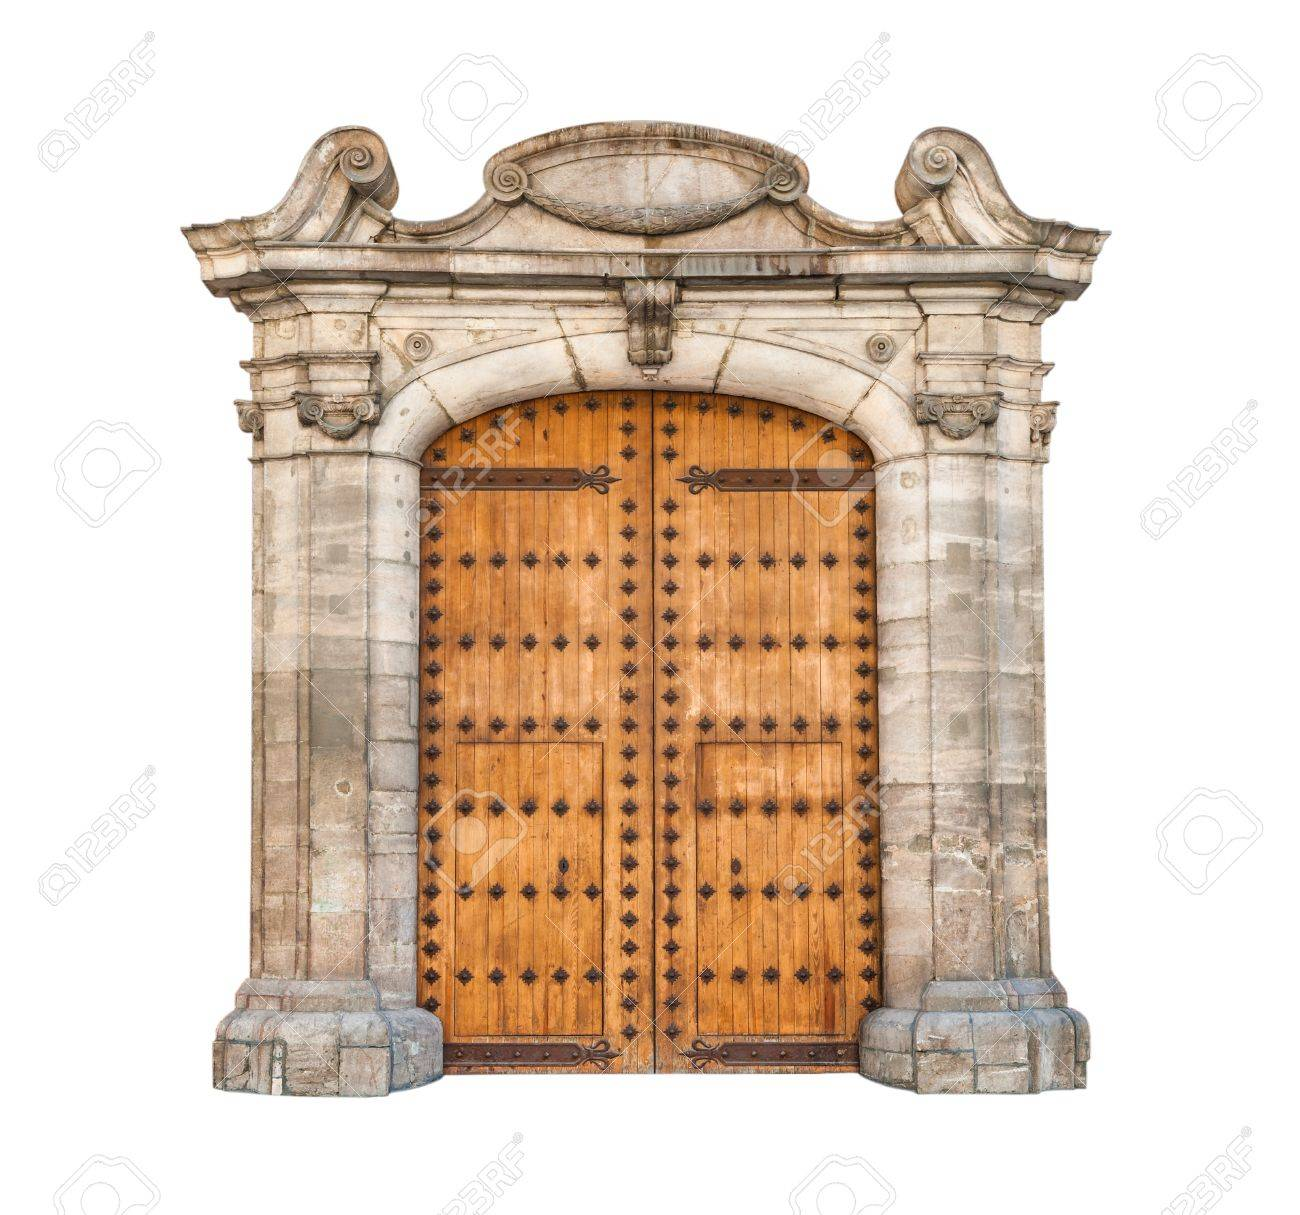 Wooden Double Doors With Iron Details Beautiful Stone Arch Designed In Gothic Style Massive Doorway Isolated